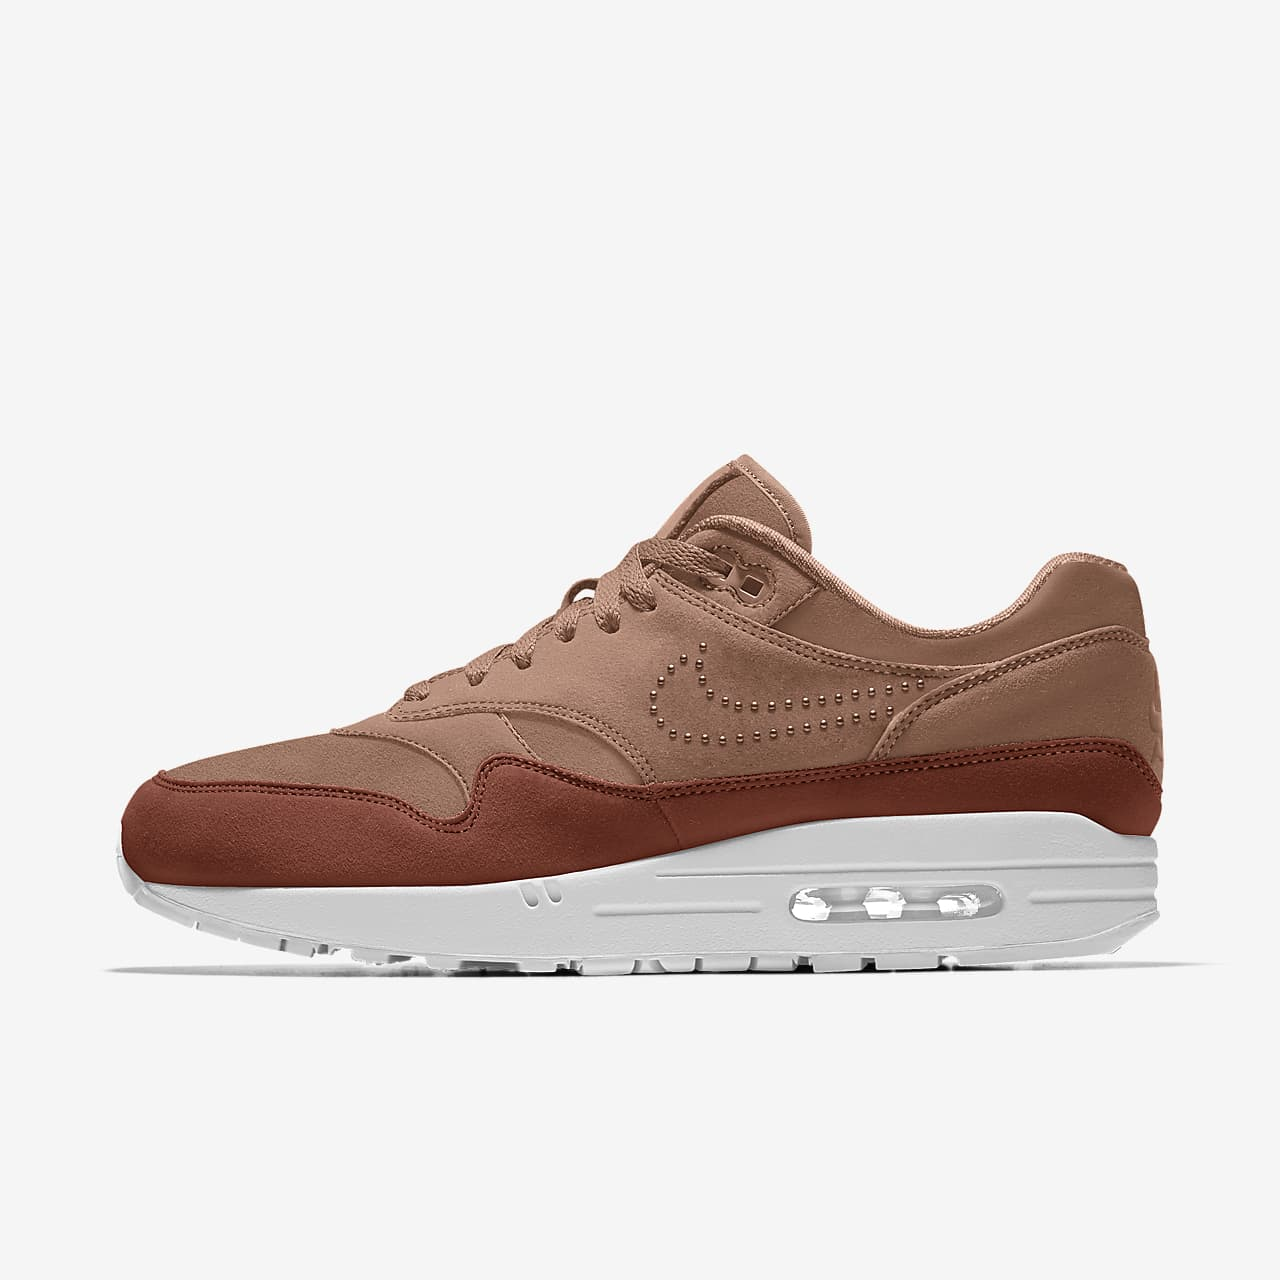 Chaussure personnalisable Nike Air Max 1 Premium By You pour Femme ...